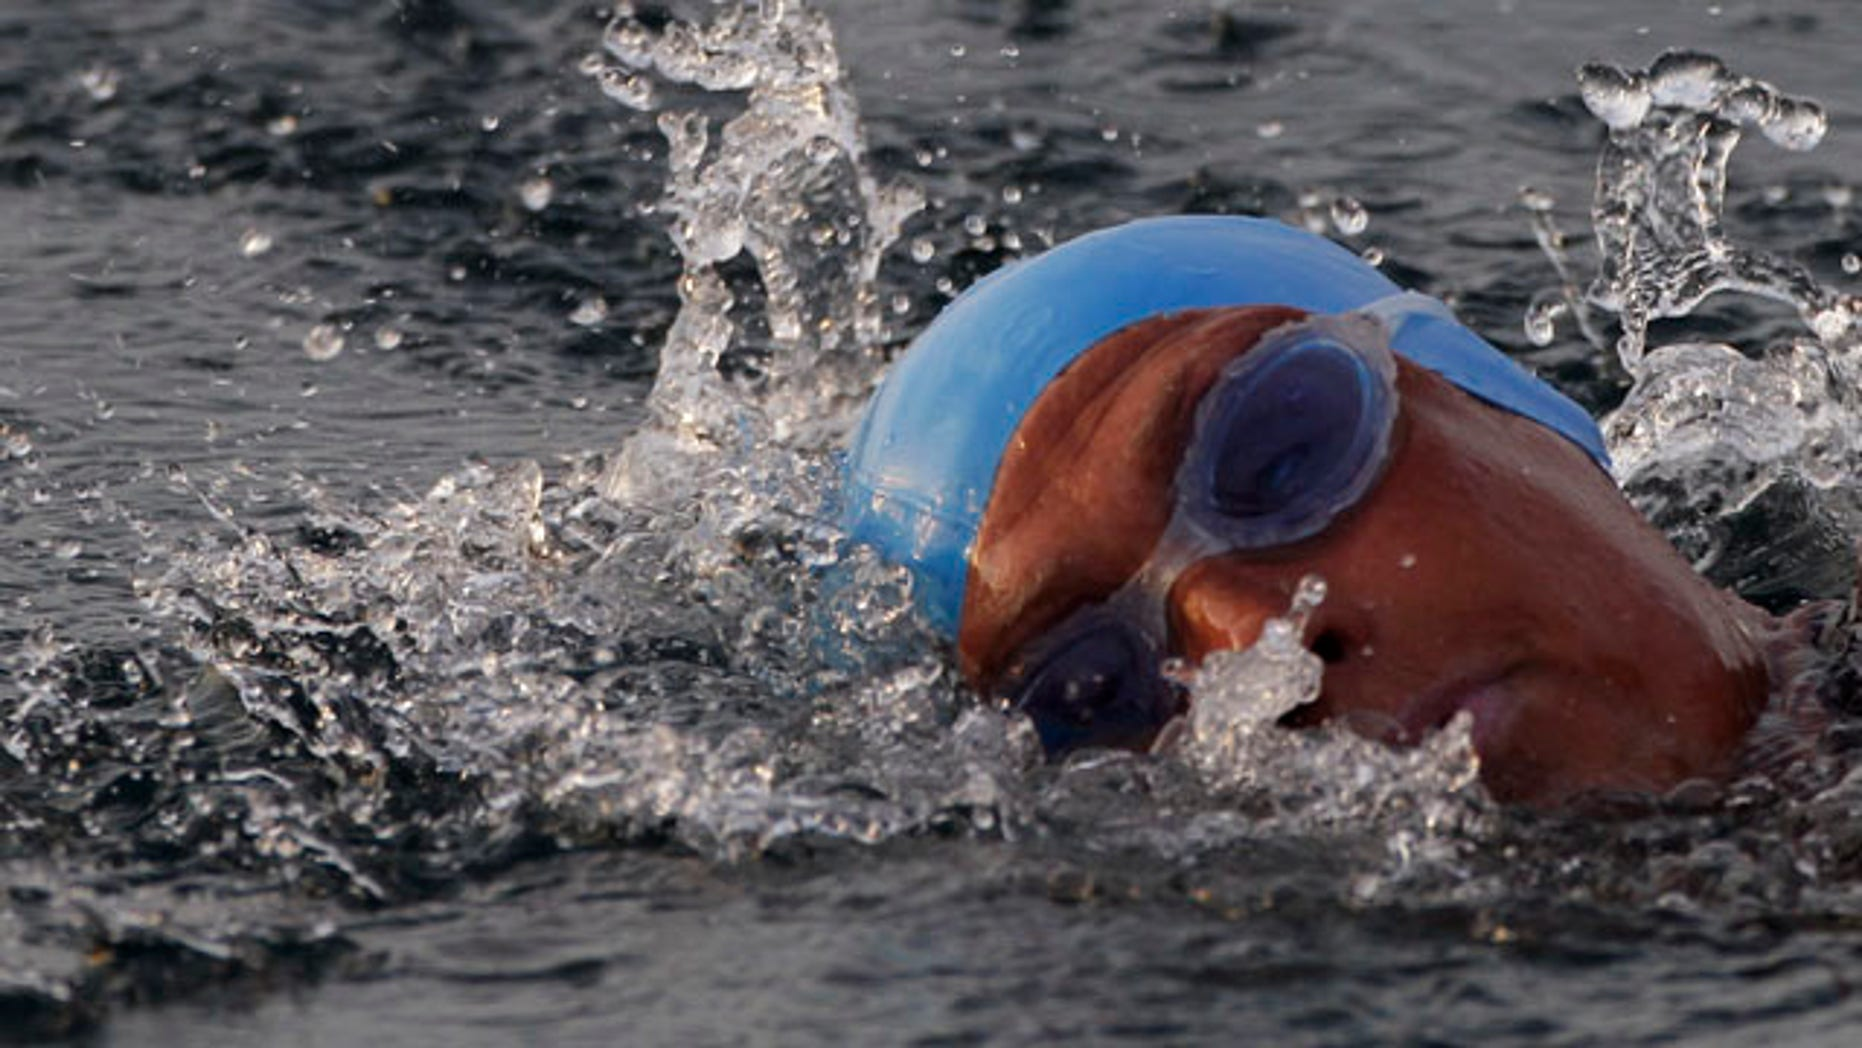 American endurance swimmer Diana Nyad , 61, swims in Cuban waters, offshore Havana, Cuba, Sunday, Aug. 7, 2011. Nyad jumped into Cuban waters Sunday evening and set off in a bid to become the first person to swim across the Florida Straits without the aid of a shark cage. (AP Photo/Franklin Reyes)